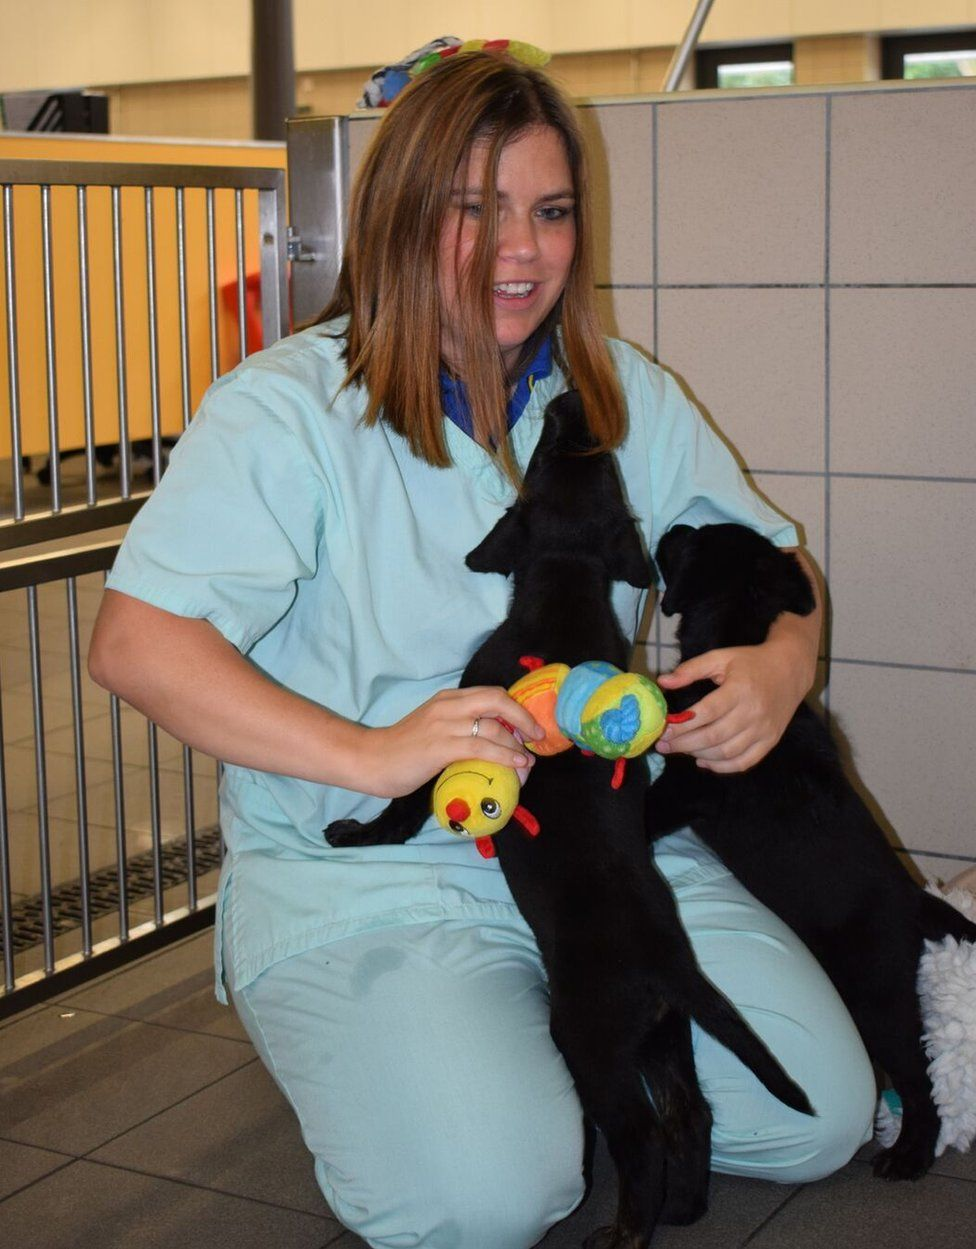 Anna Marinker, one of the dog care supervisors at the Guide Dogs National Breeding Centre, plays with two 6-week-old puppies